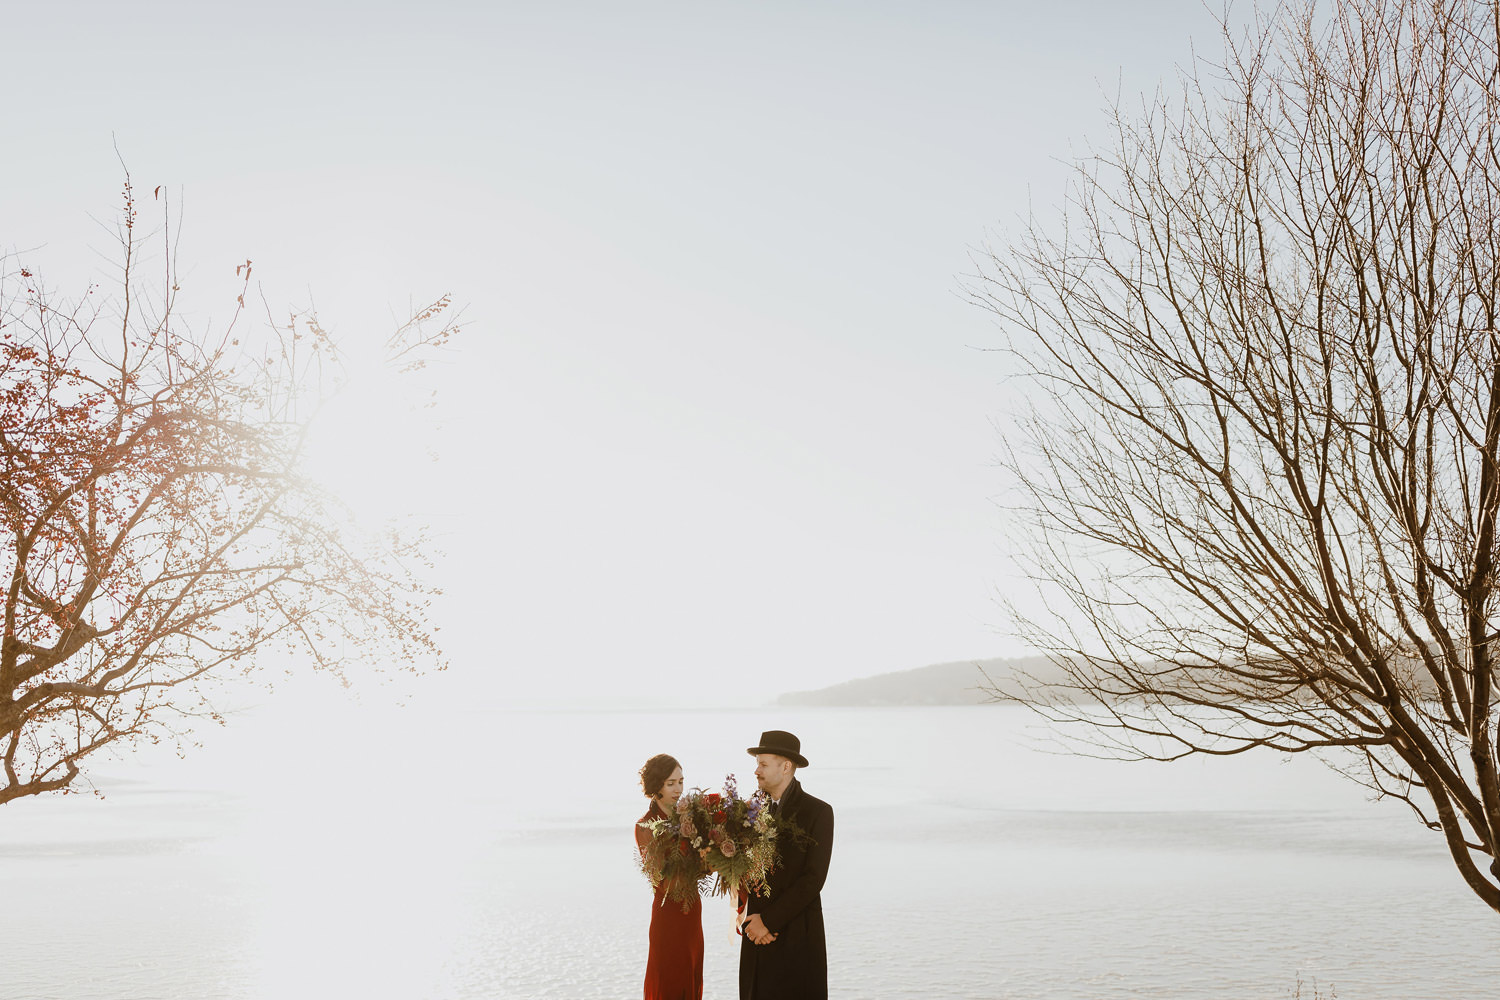 Artistic portrait of the bride and groom take by Lake Geneva on their winter wedding day